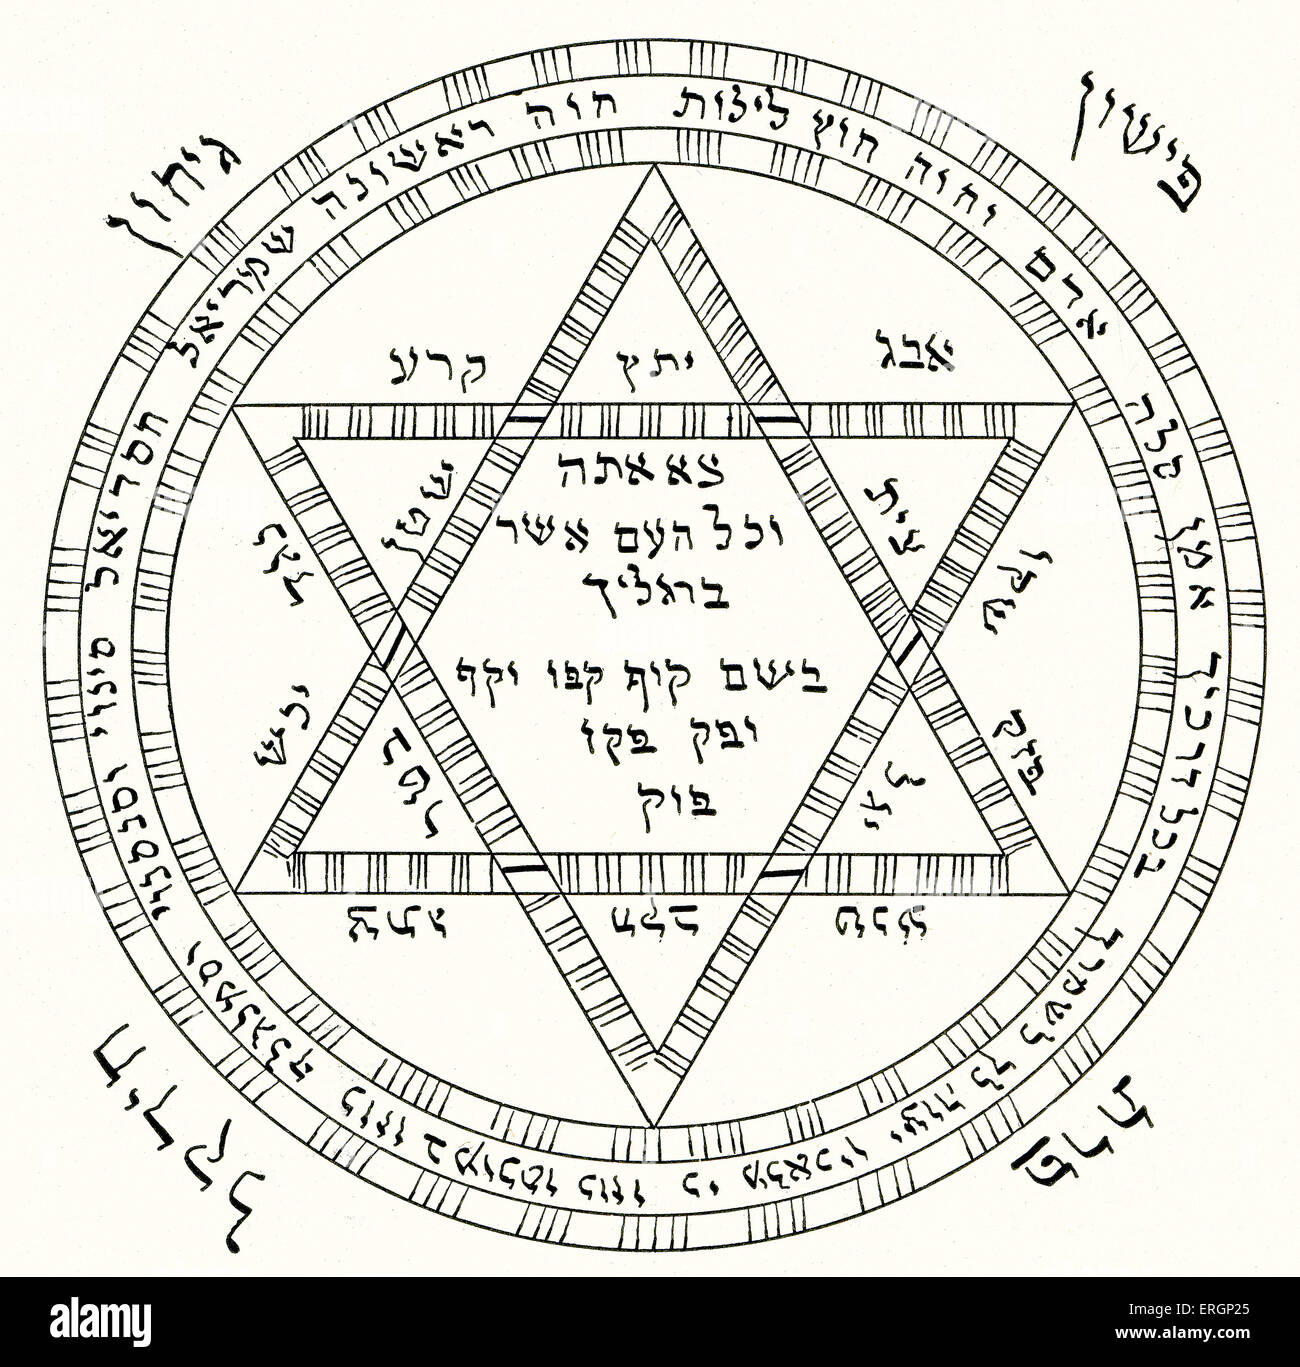 Evil Eye, Hebrew amulet. From the 'Sefer Raziel' (Book of Raziel the Angel) a medieval Kabbalah grimoire - Stock Image